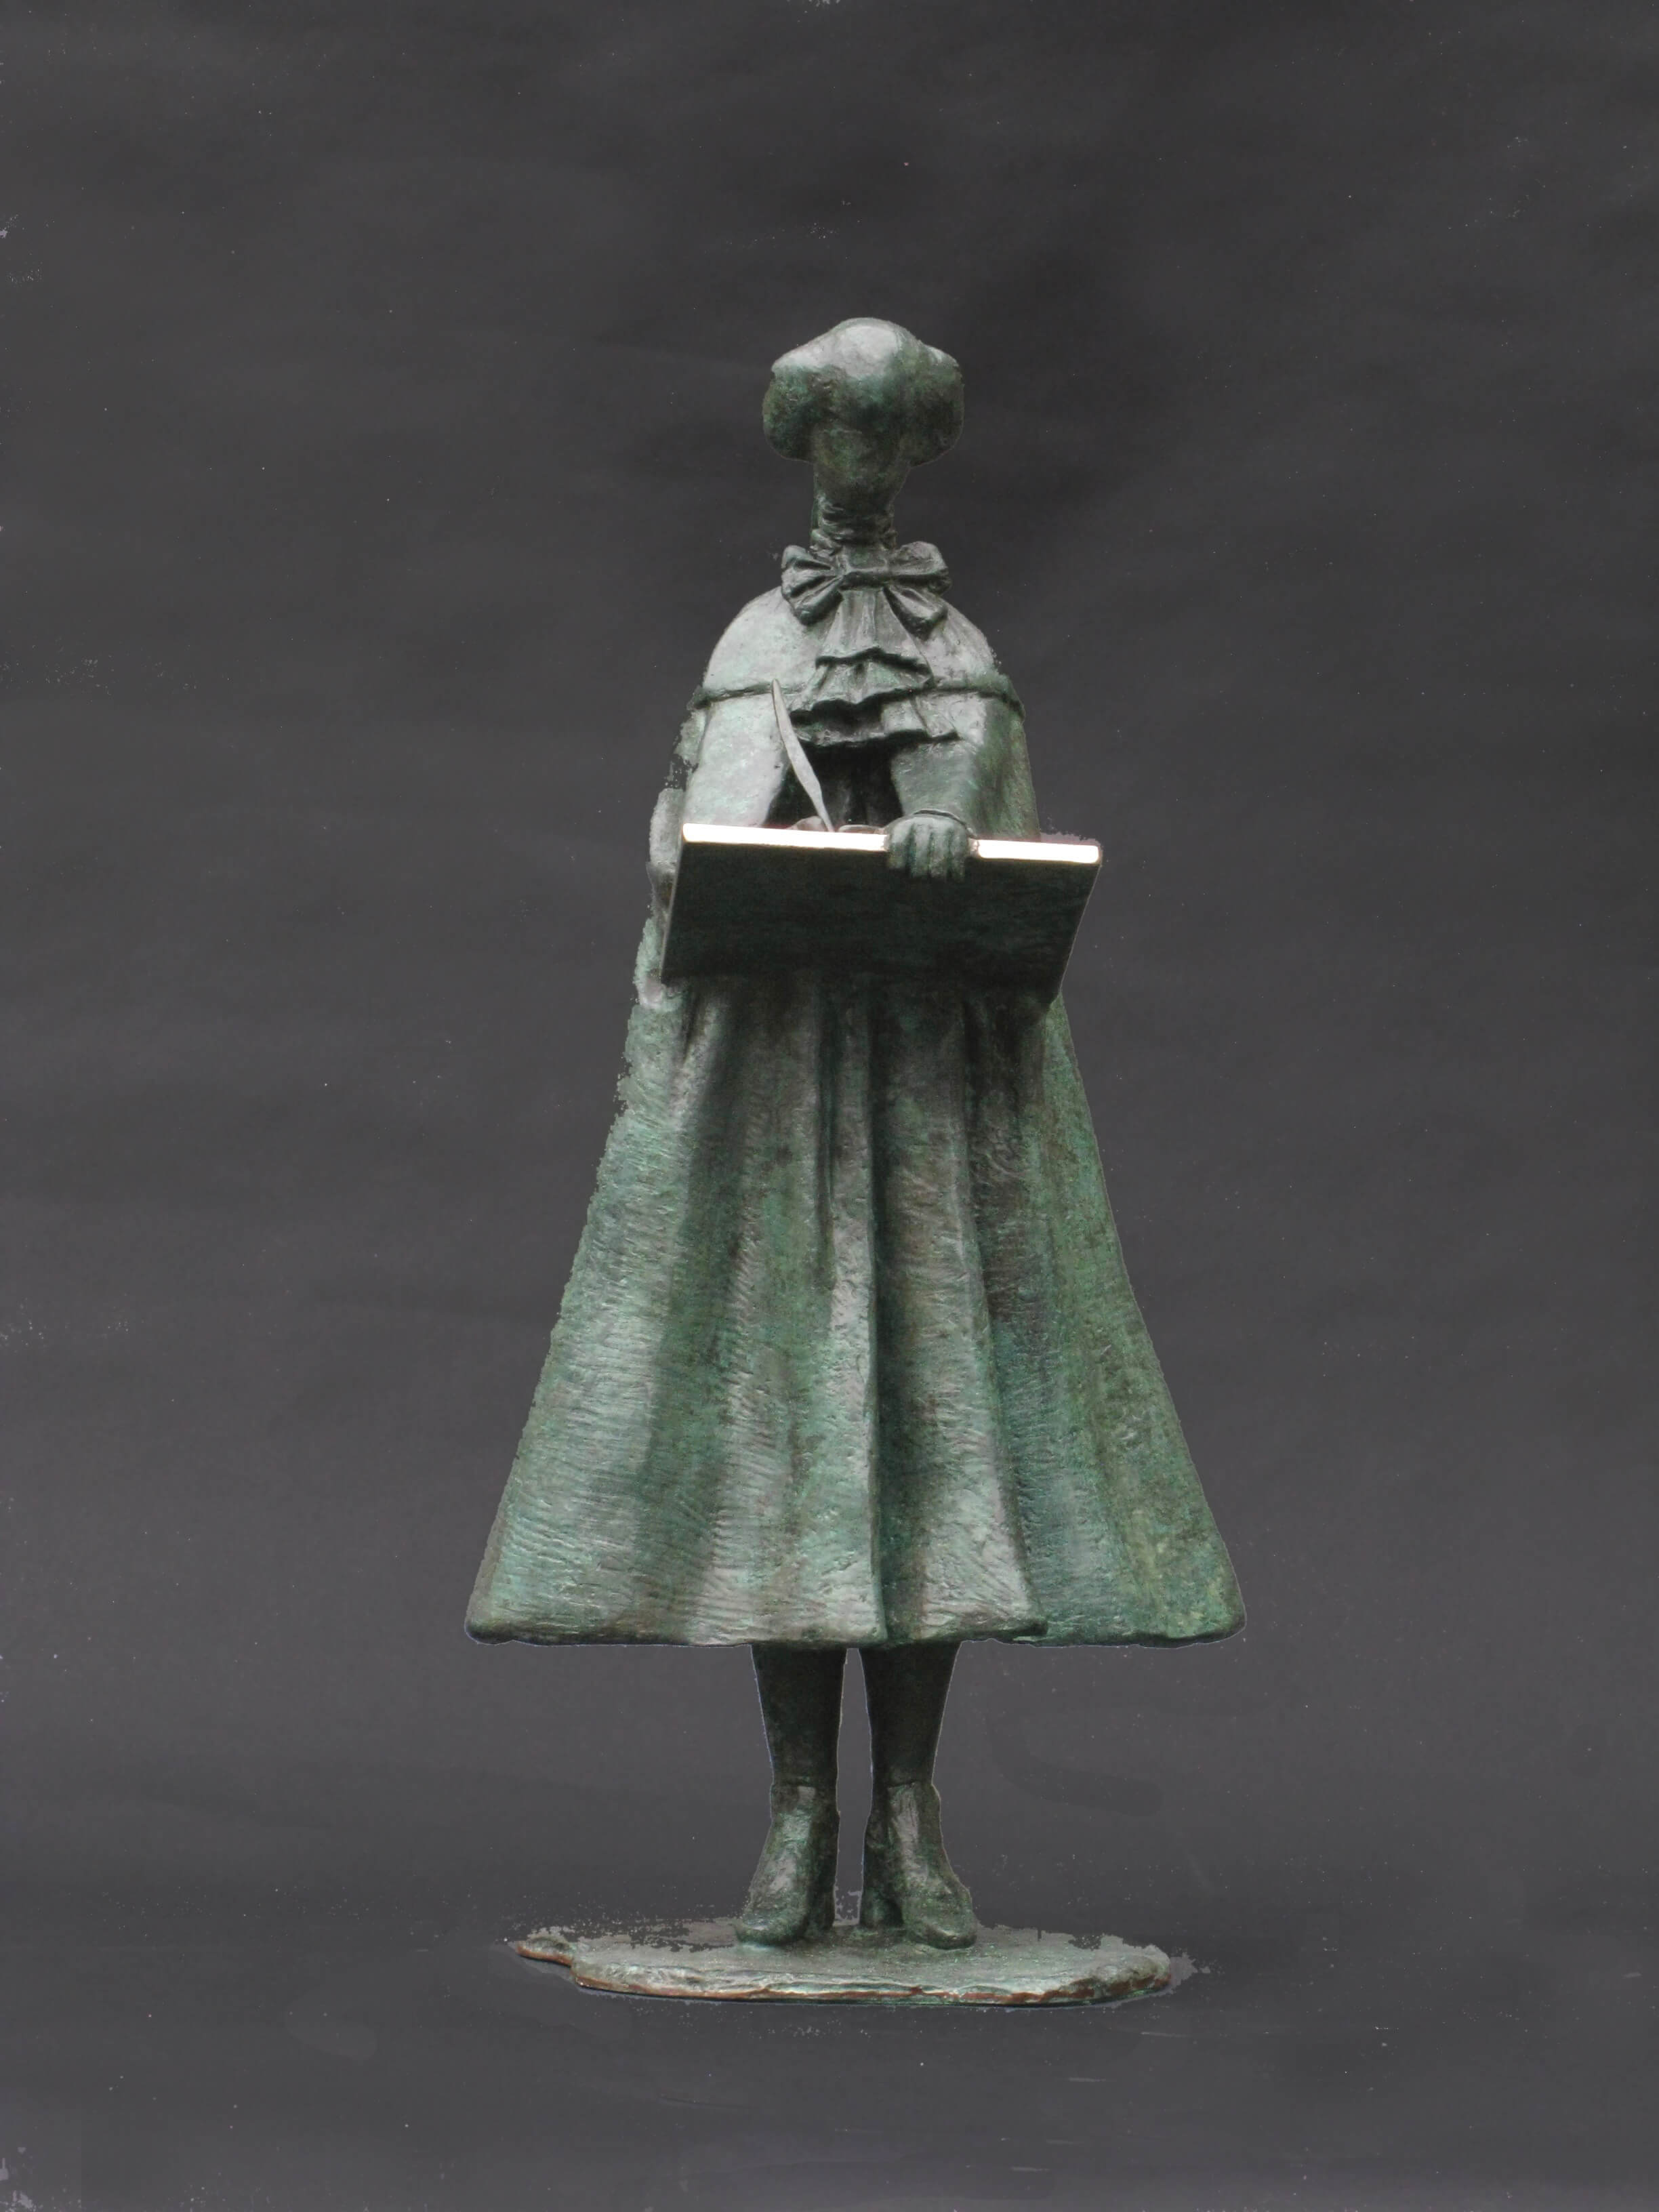 Contemplating Canoletto by Philip Jackson at Muse. The Sculpture Company